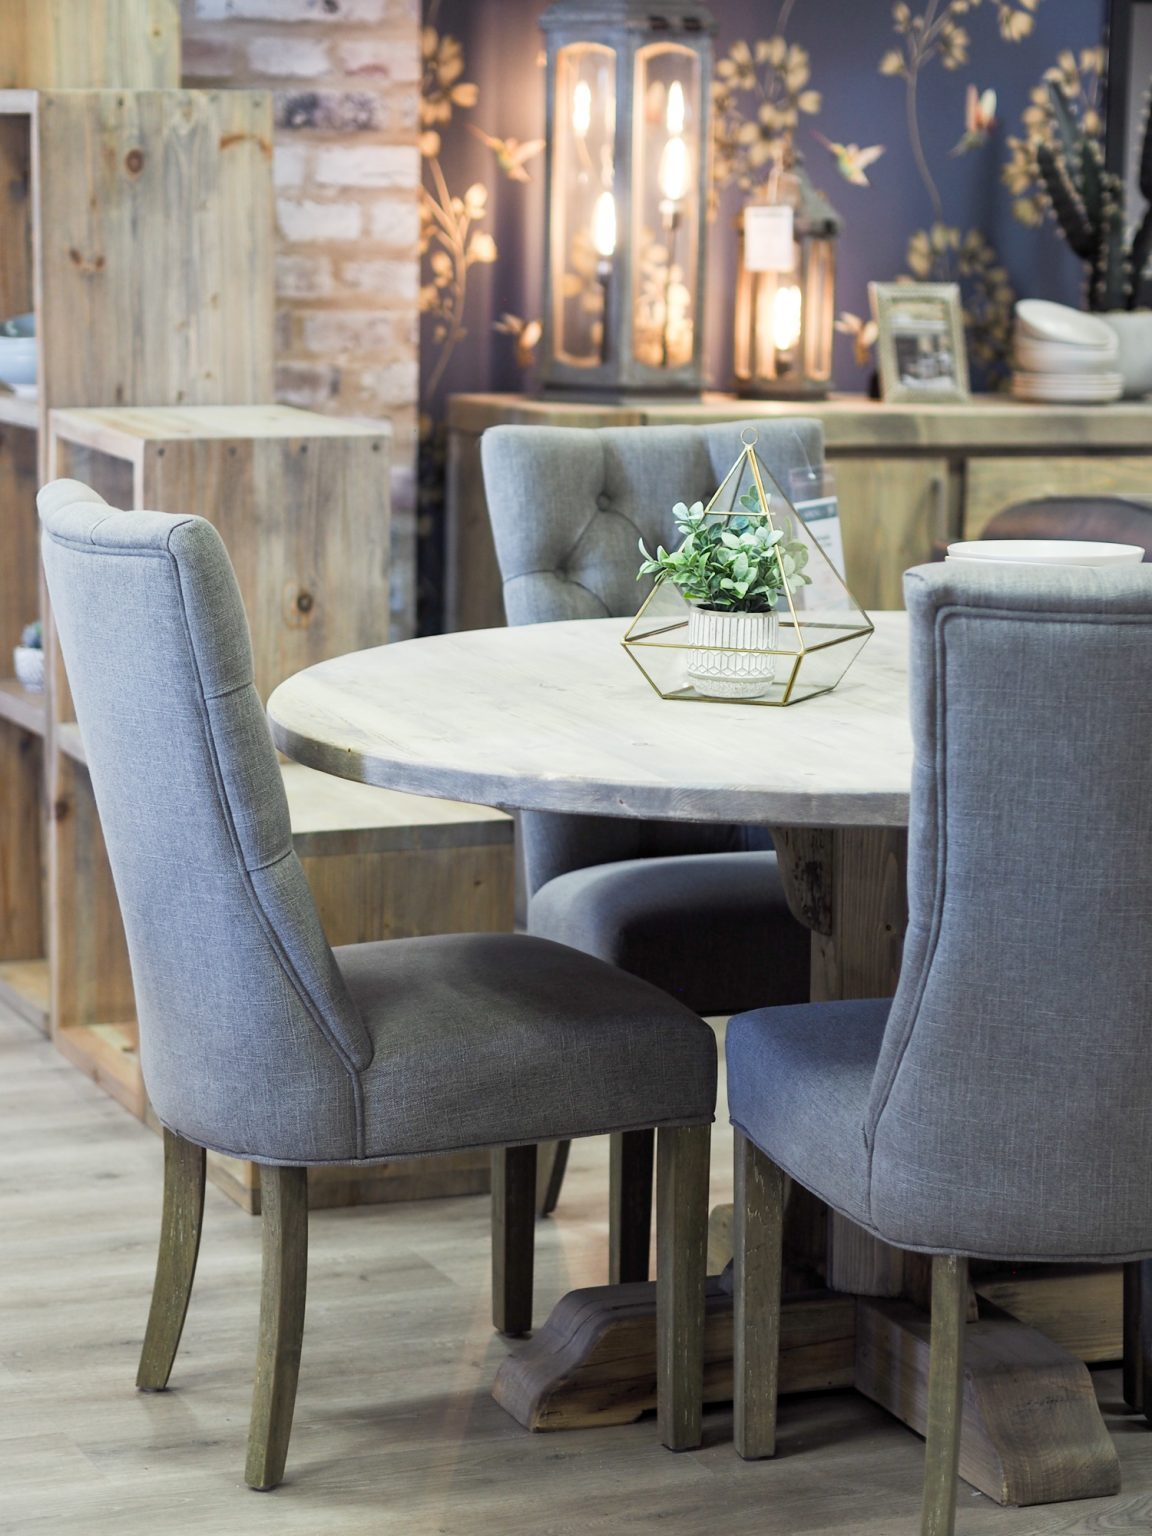 Sienna 140cm Round Reclaimed Wood Dining Table & 4 Grenada Chairs | Housing Units